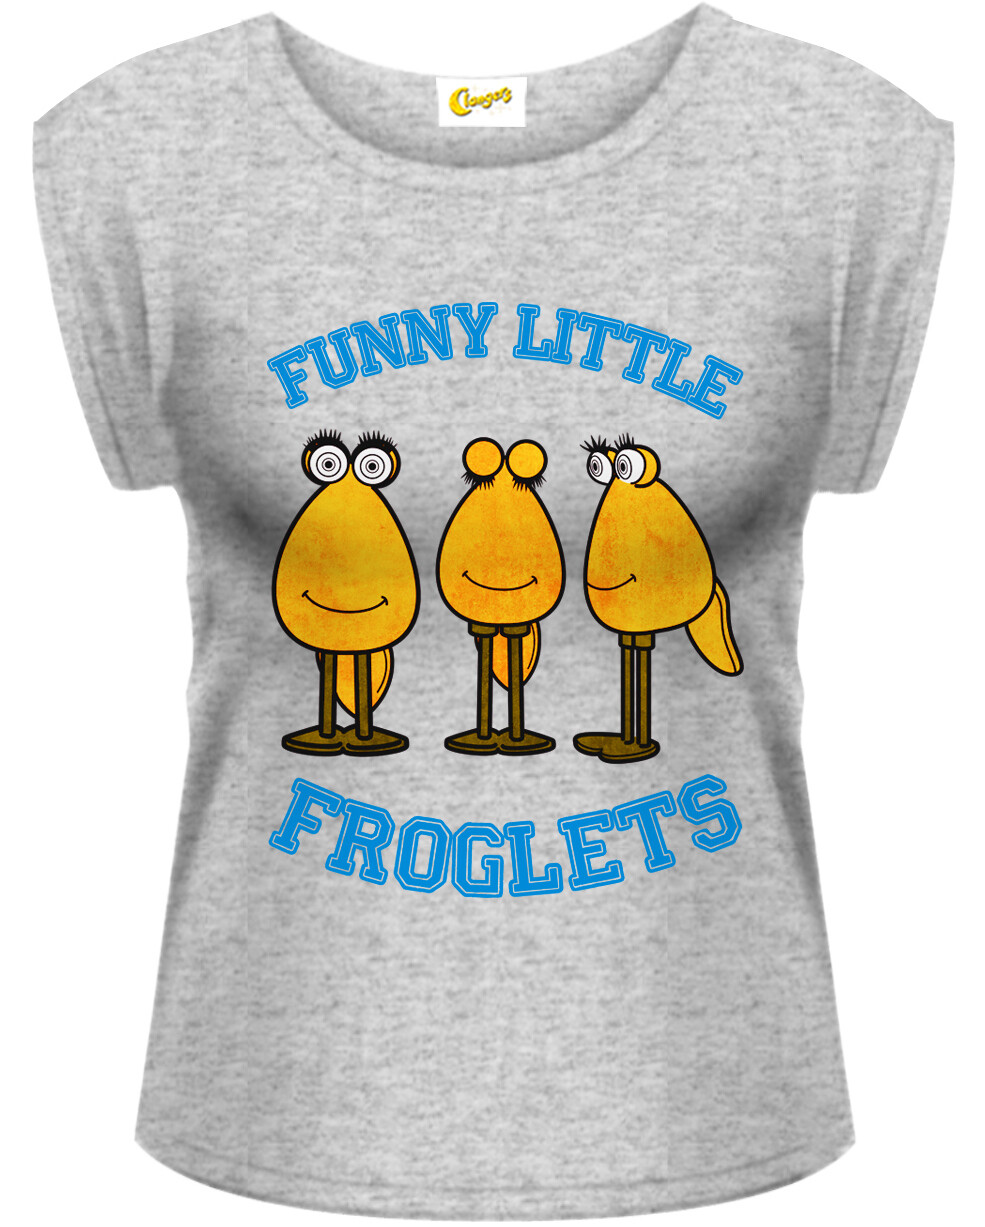 Female Clangers Funny Little Froglets T-Shirt